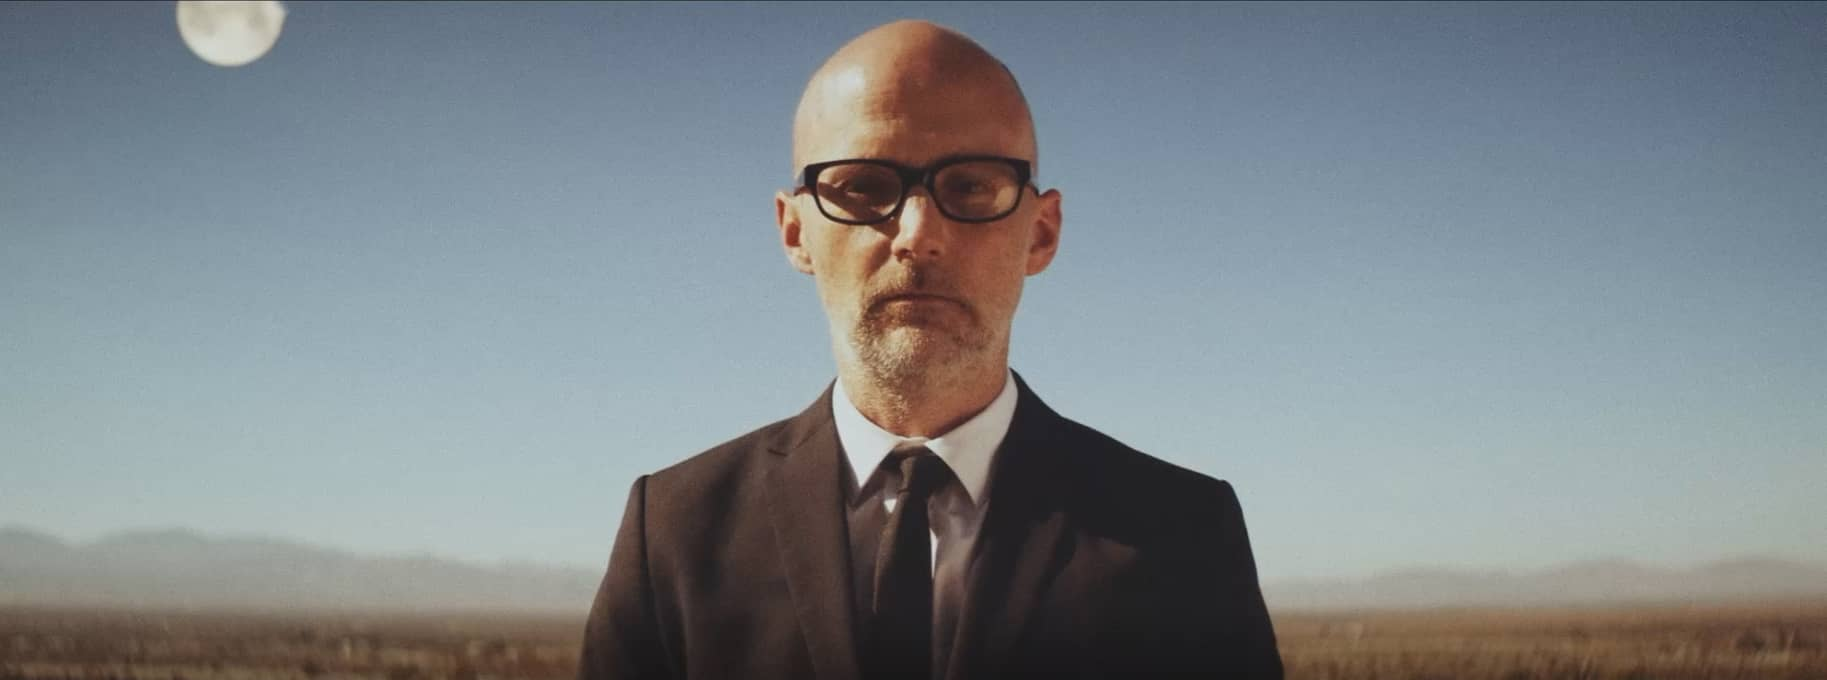 Moby - 'Natural Blues' (Reprise Version) ft. Gregory Porter & Amythyst Kiah (Official Music Video) - © to the owners